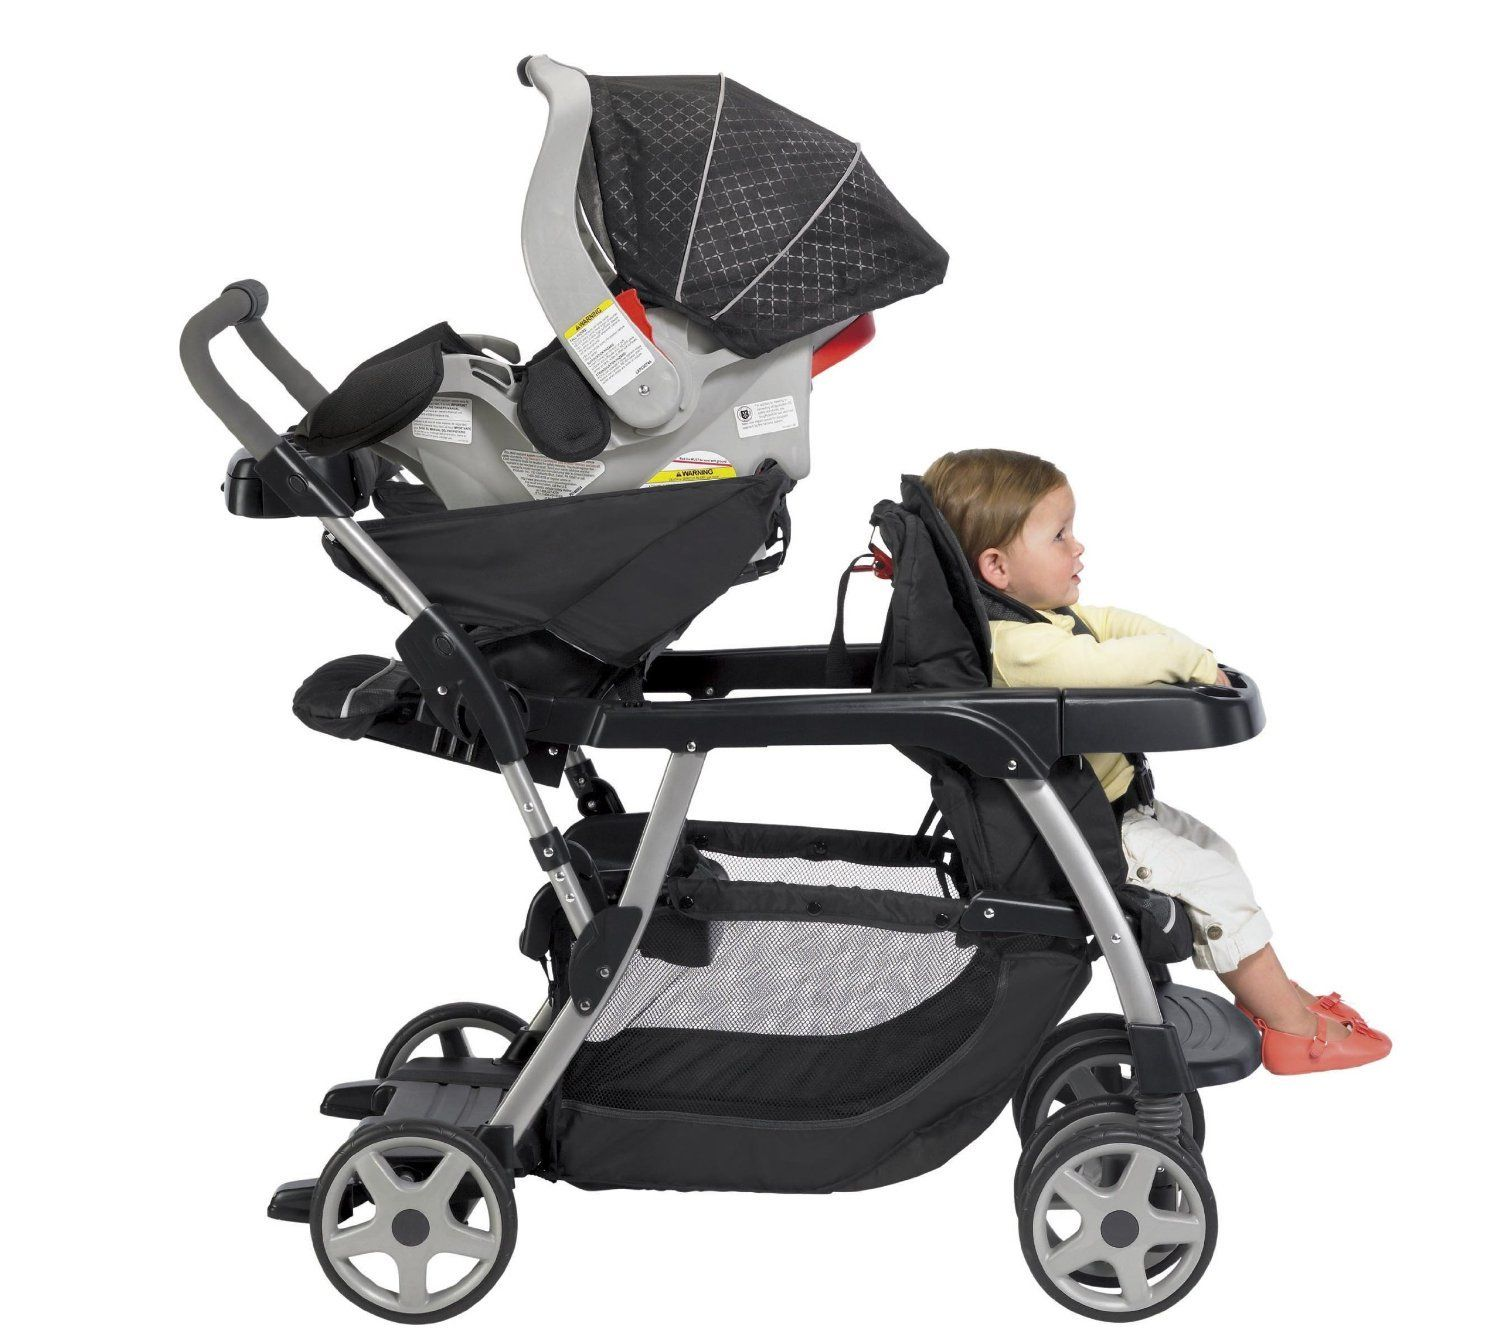 Graco Double Stroller\/Twin Stroller with 2 Car Seats